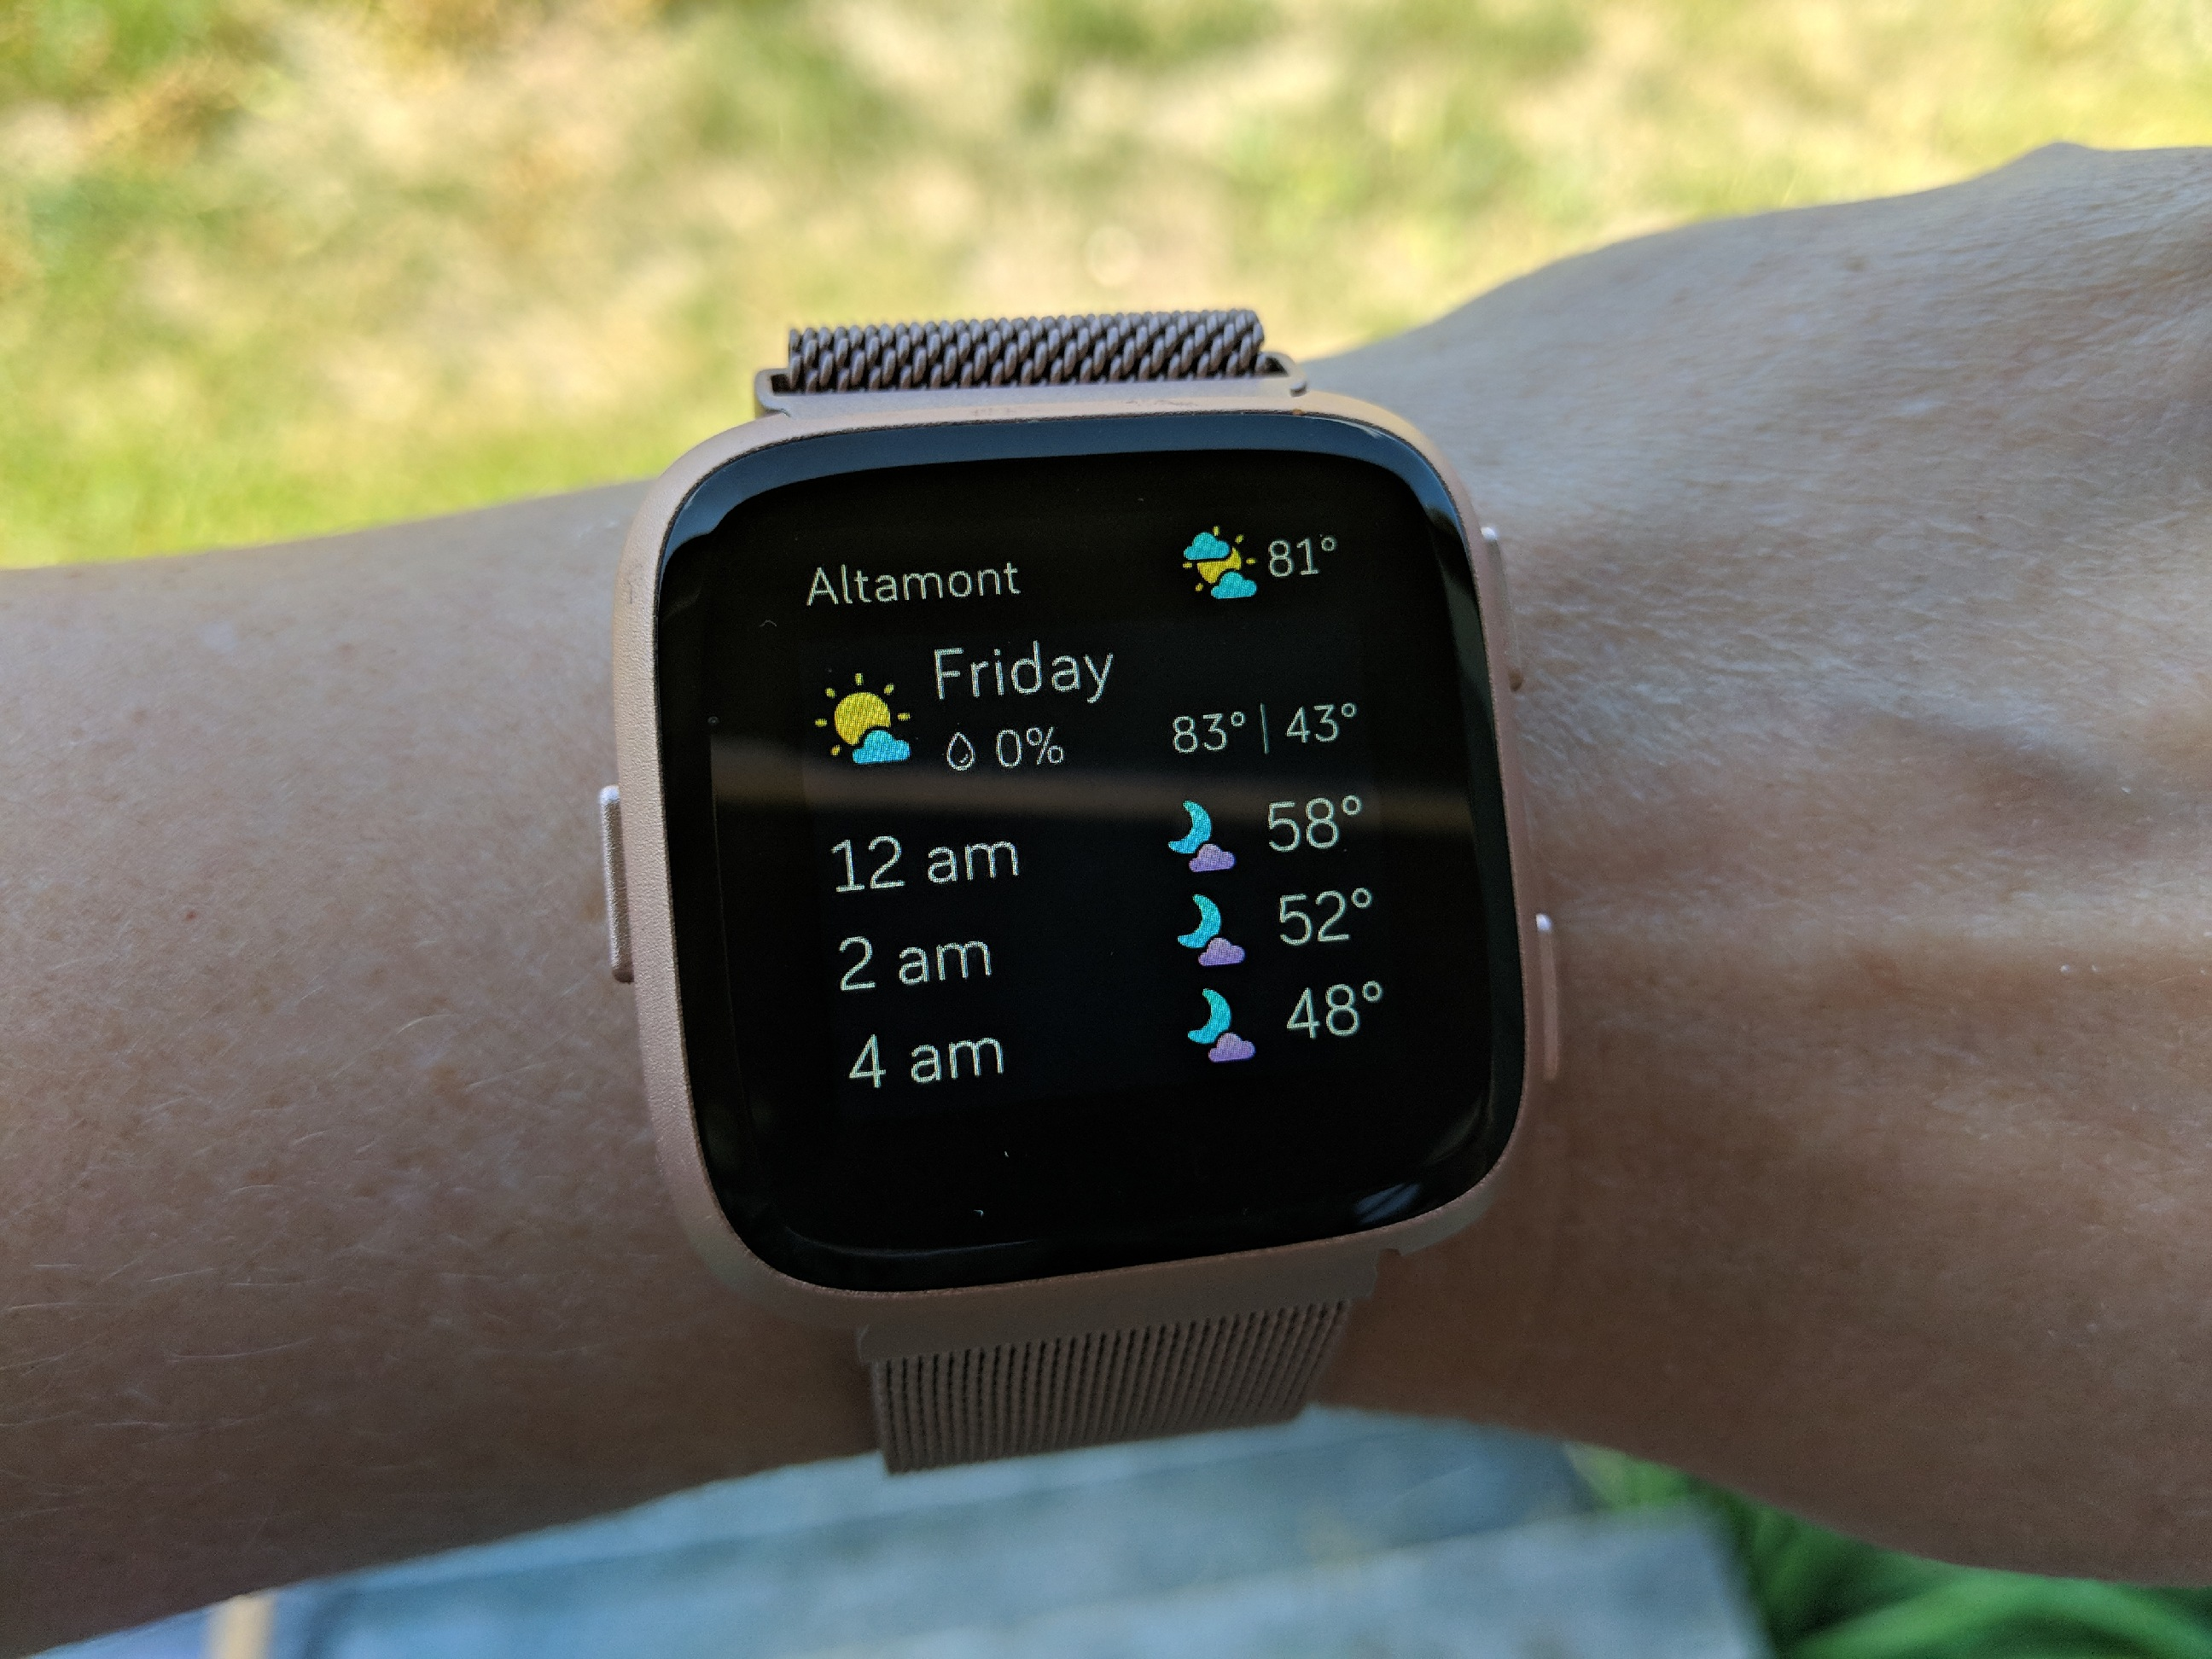 apple watch or fitbit versa? - weather face on the Versa